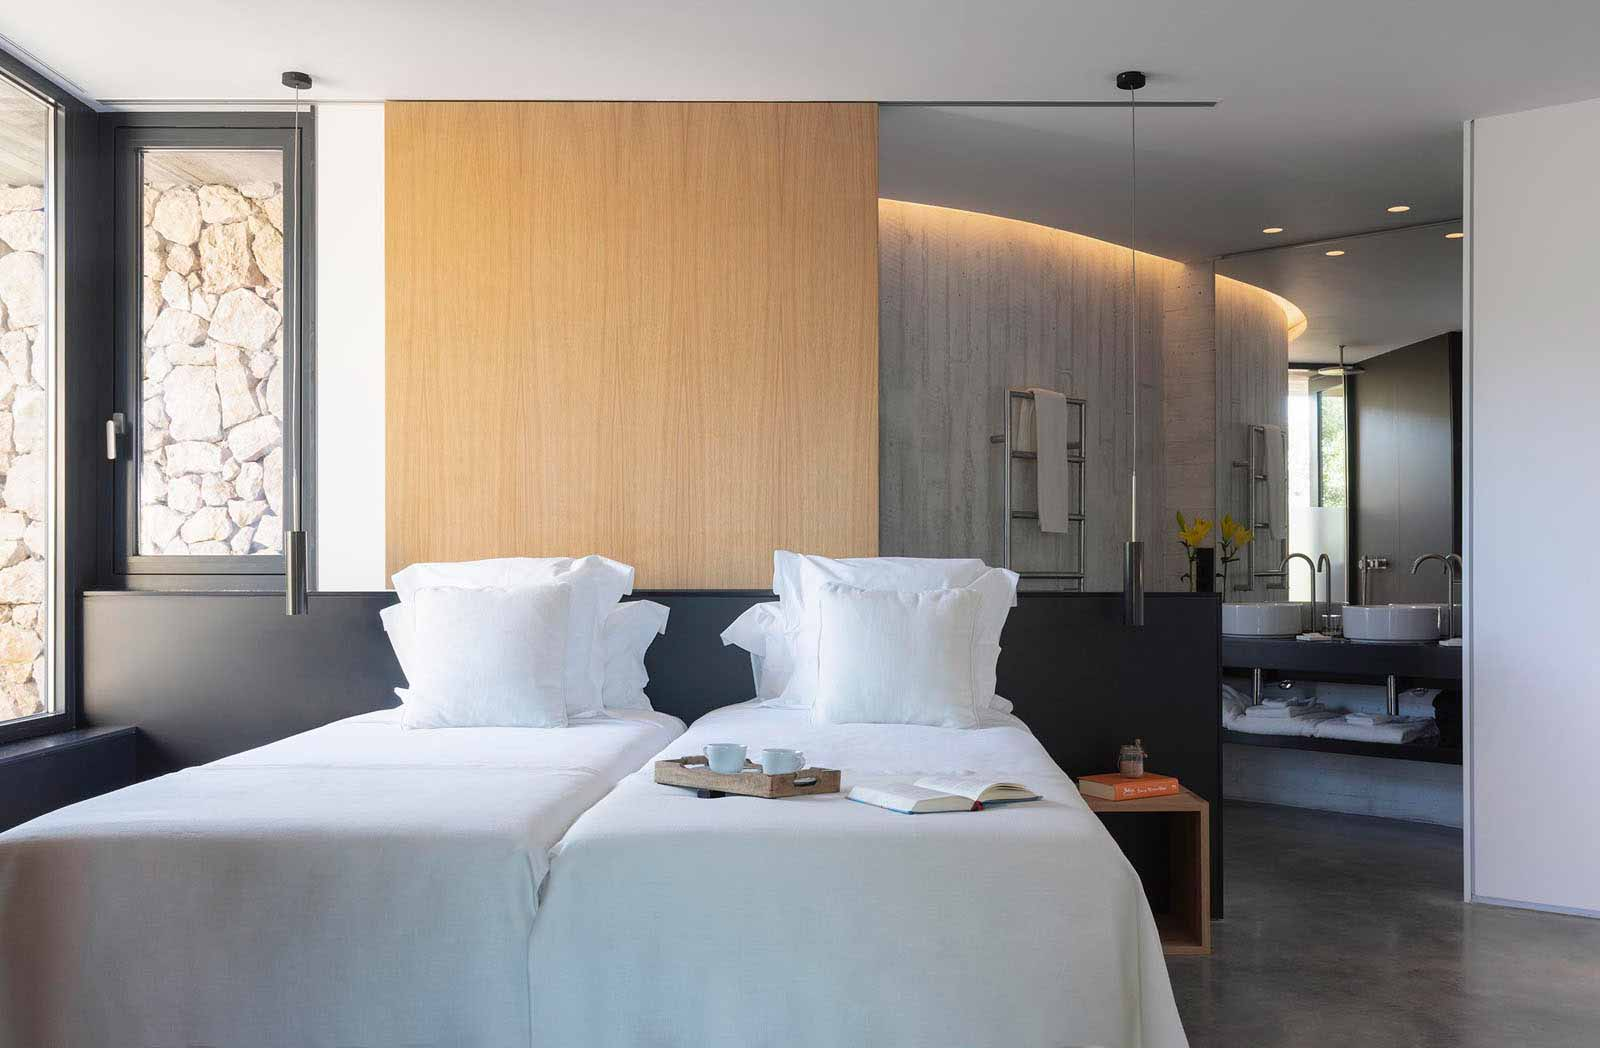 Son Brull Funf Sterne Suites Hotel